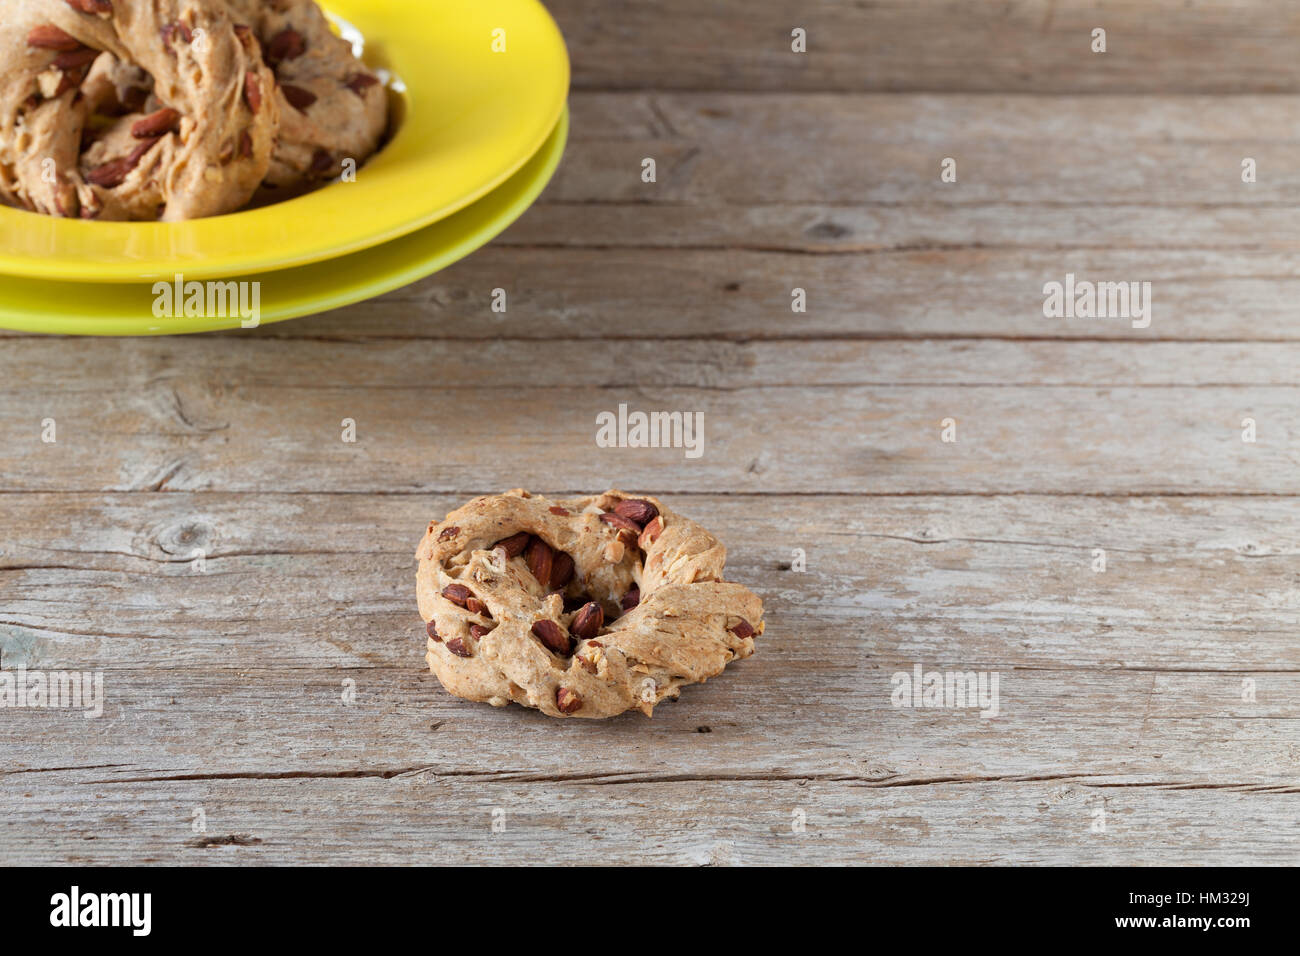 Tarallo High Resolution Stock Photography and Images - Alamy